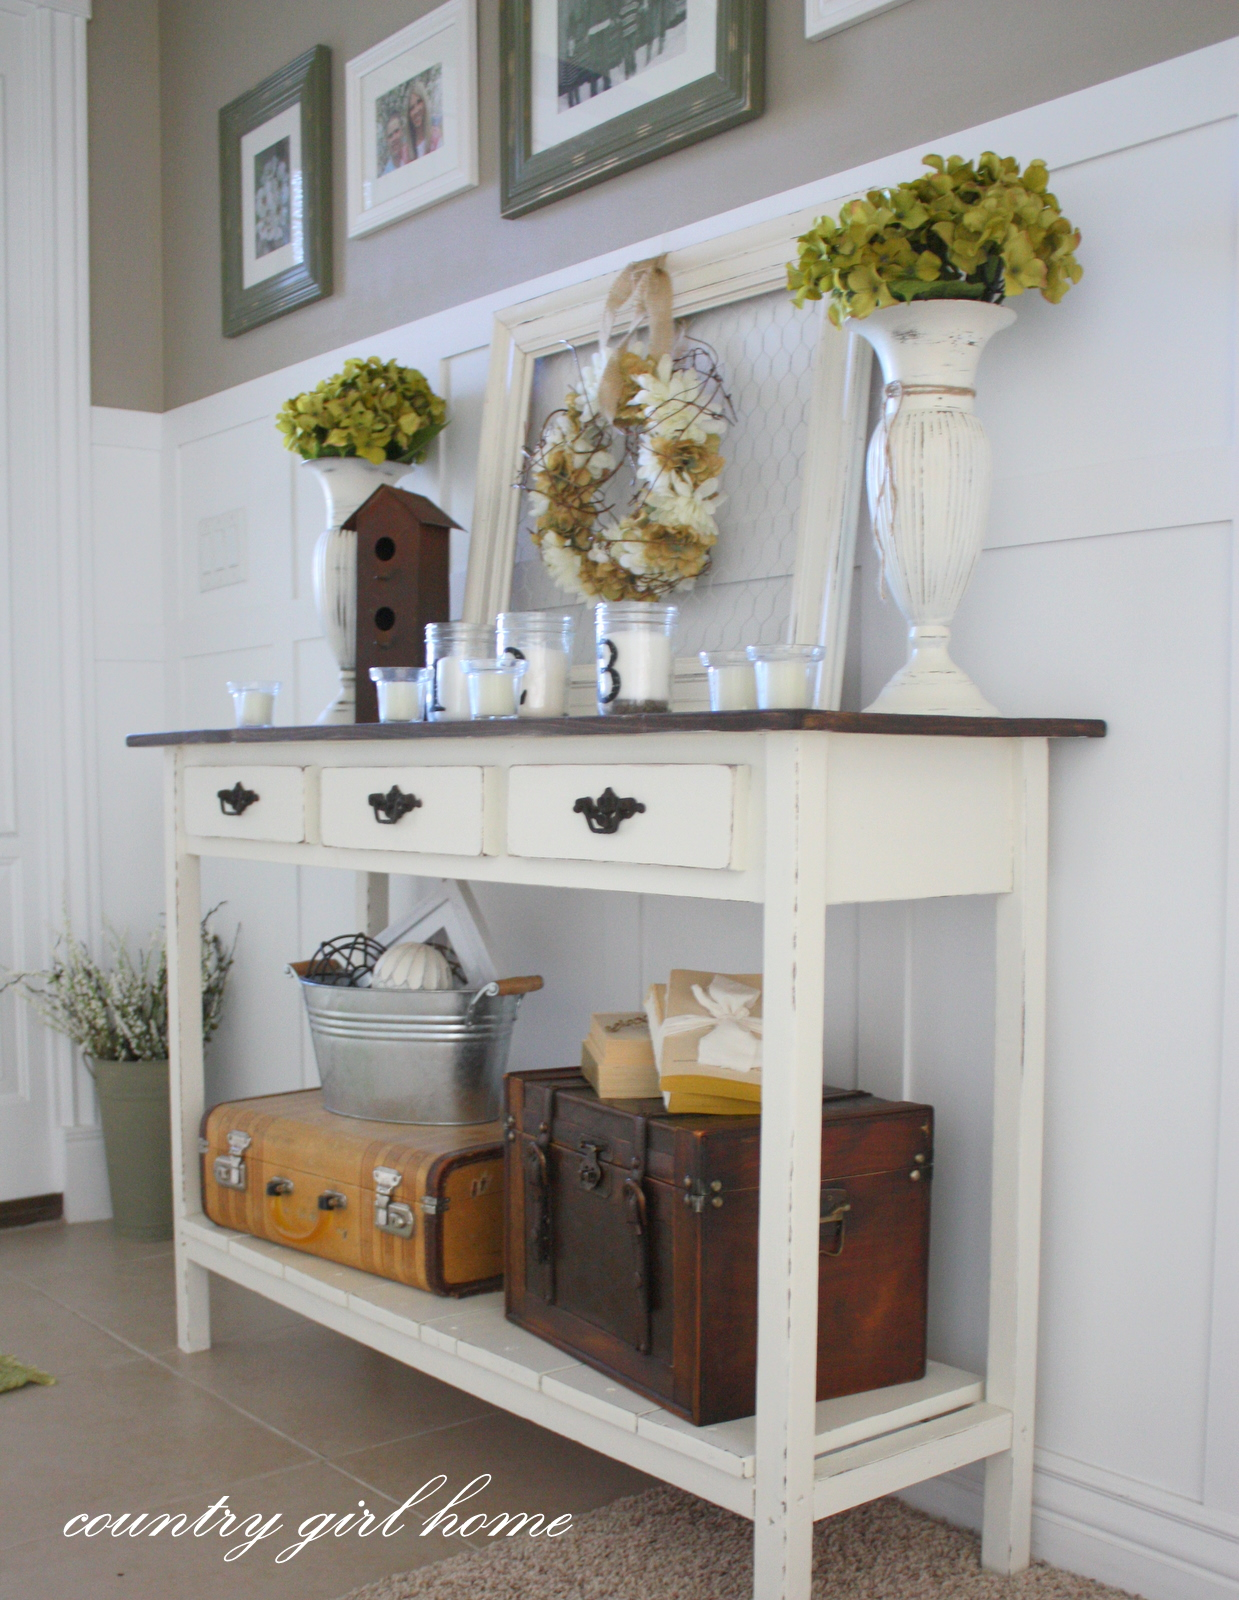 COUNTRY GIRL HOME : added onto my DIY entry table